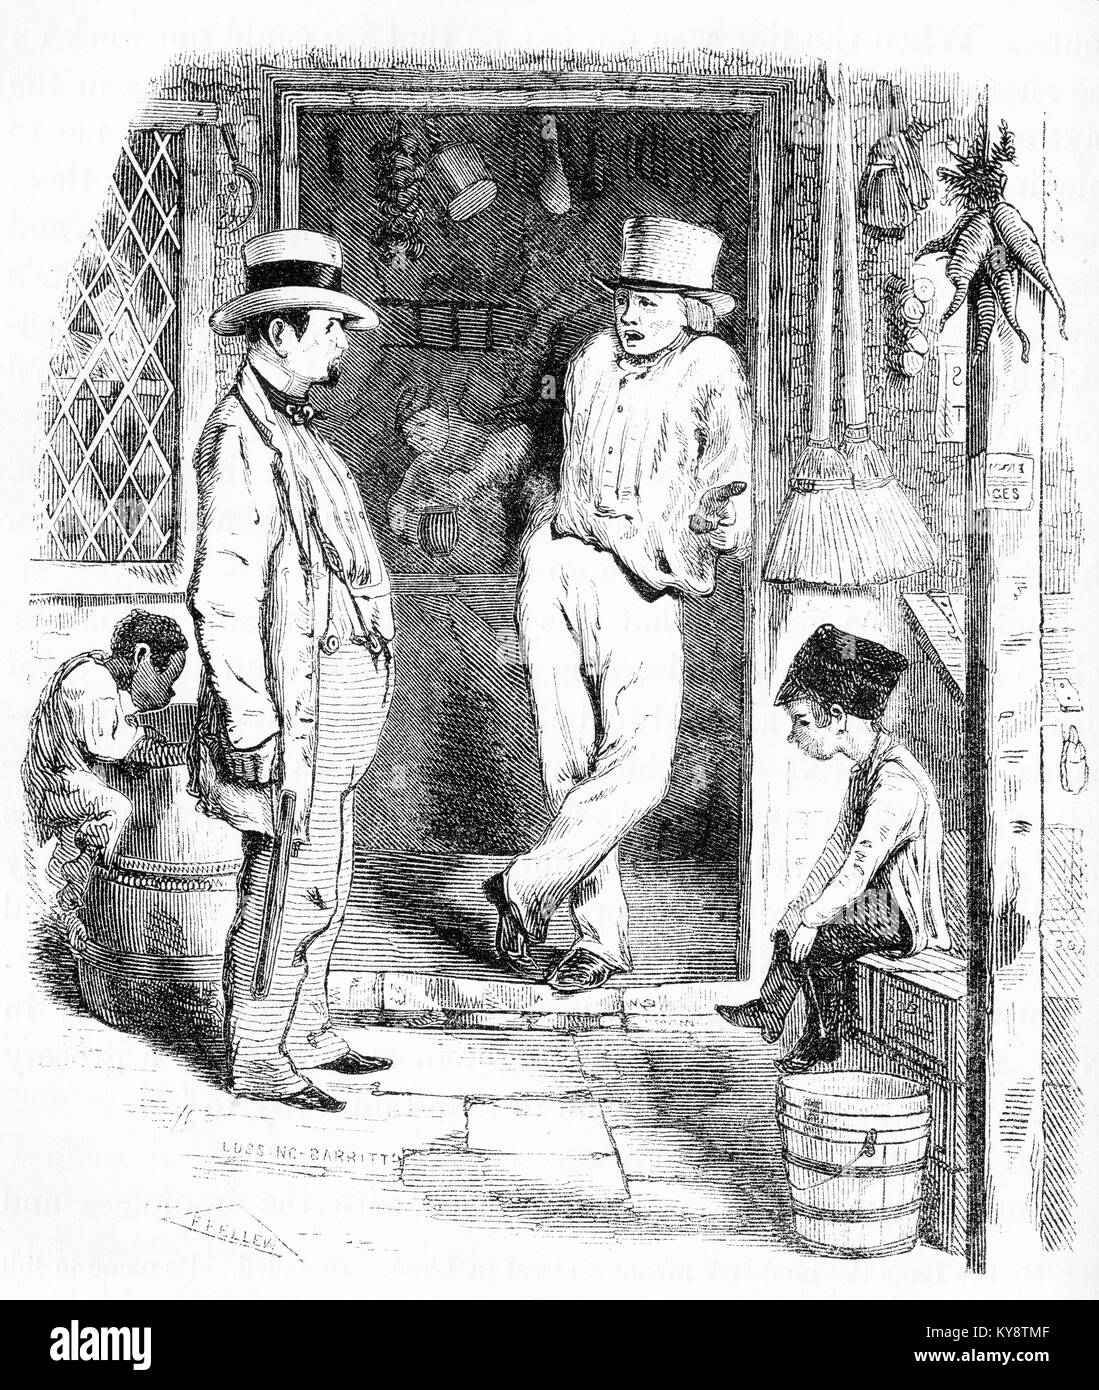 Engraving of a boy pick-pocketing a man in a London street scene during the Victorian era. From an original engraving - Stock Image